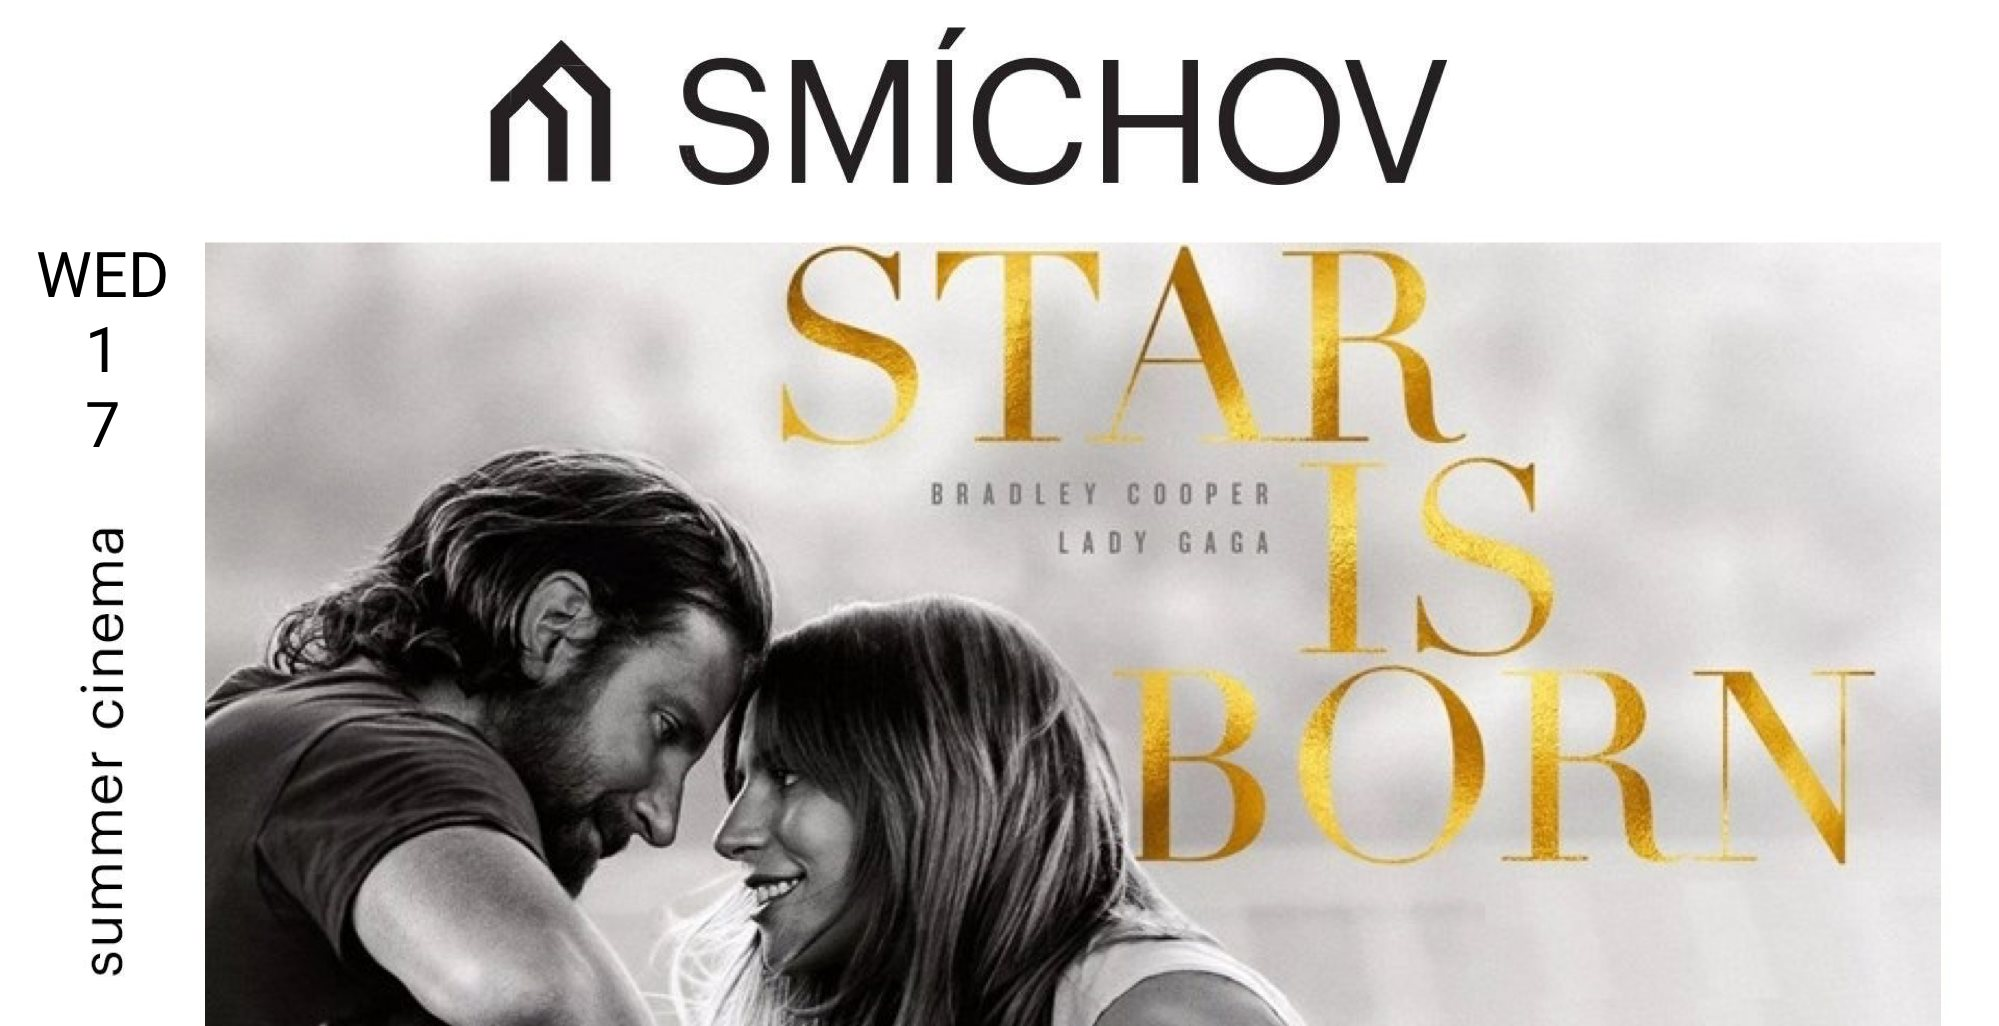 EAT IN kino! A star is born